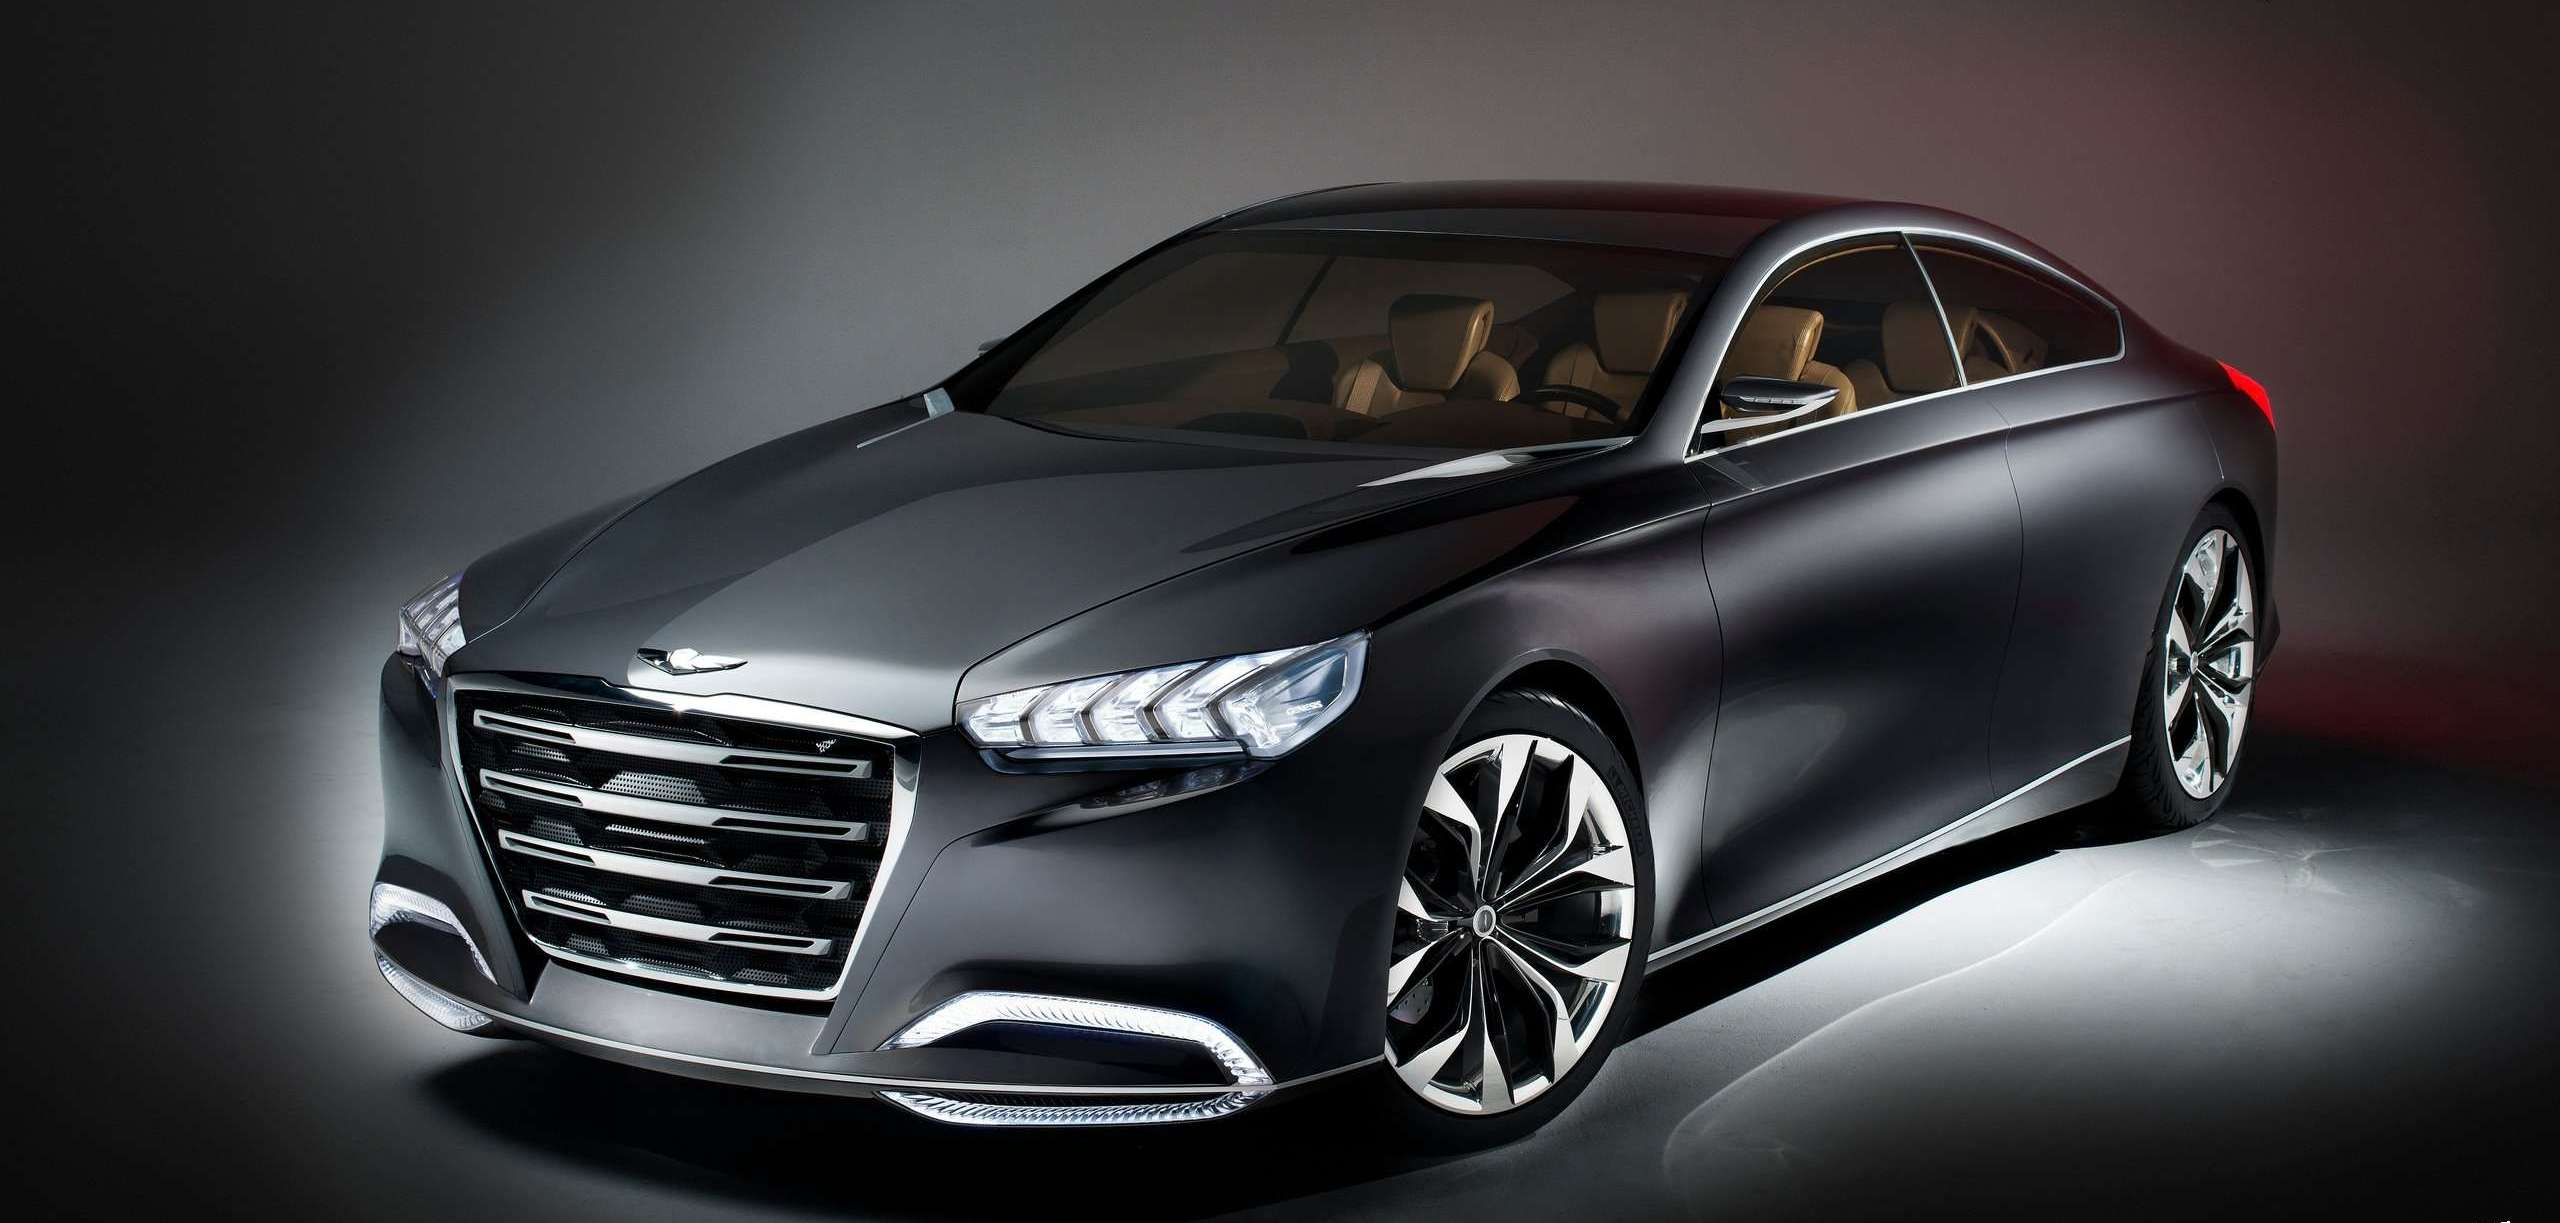 5 Reasons Why Hyundai HCD-14 Was Named The Concept Car of the Year